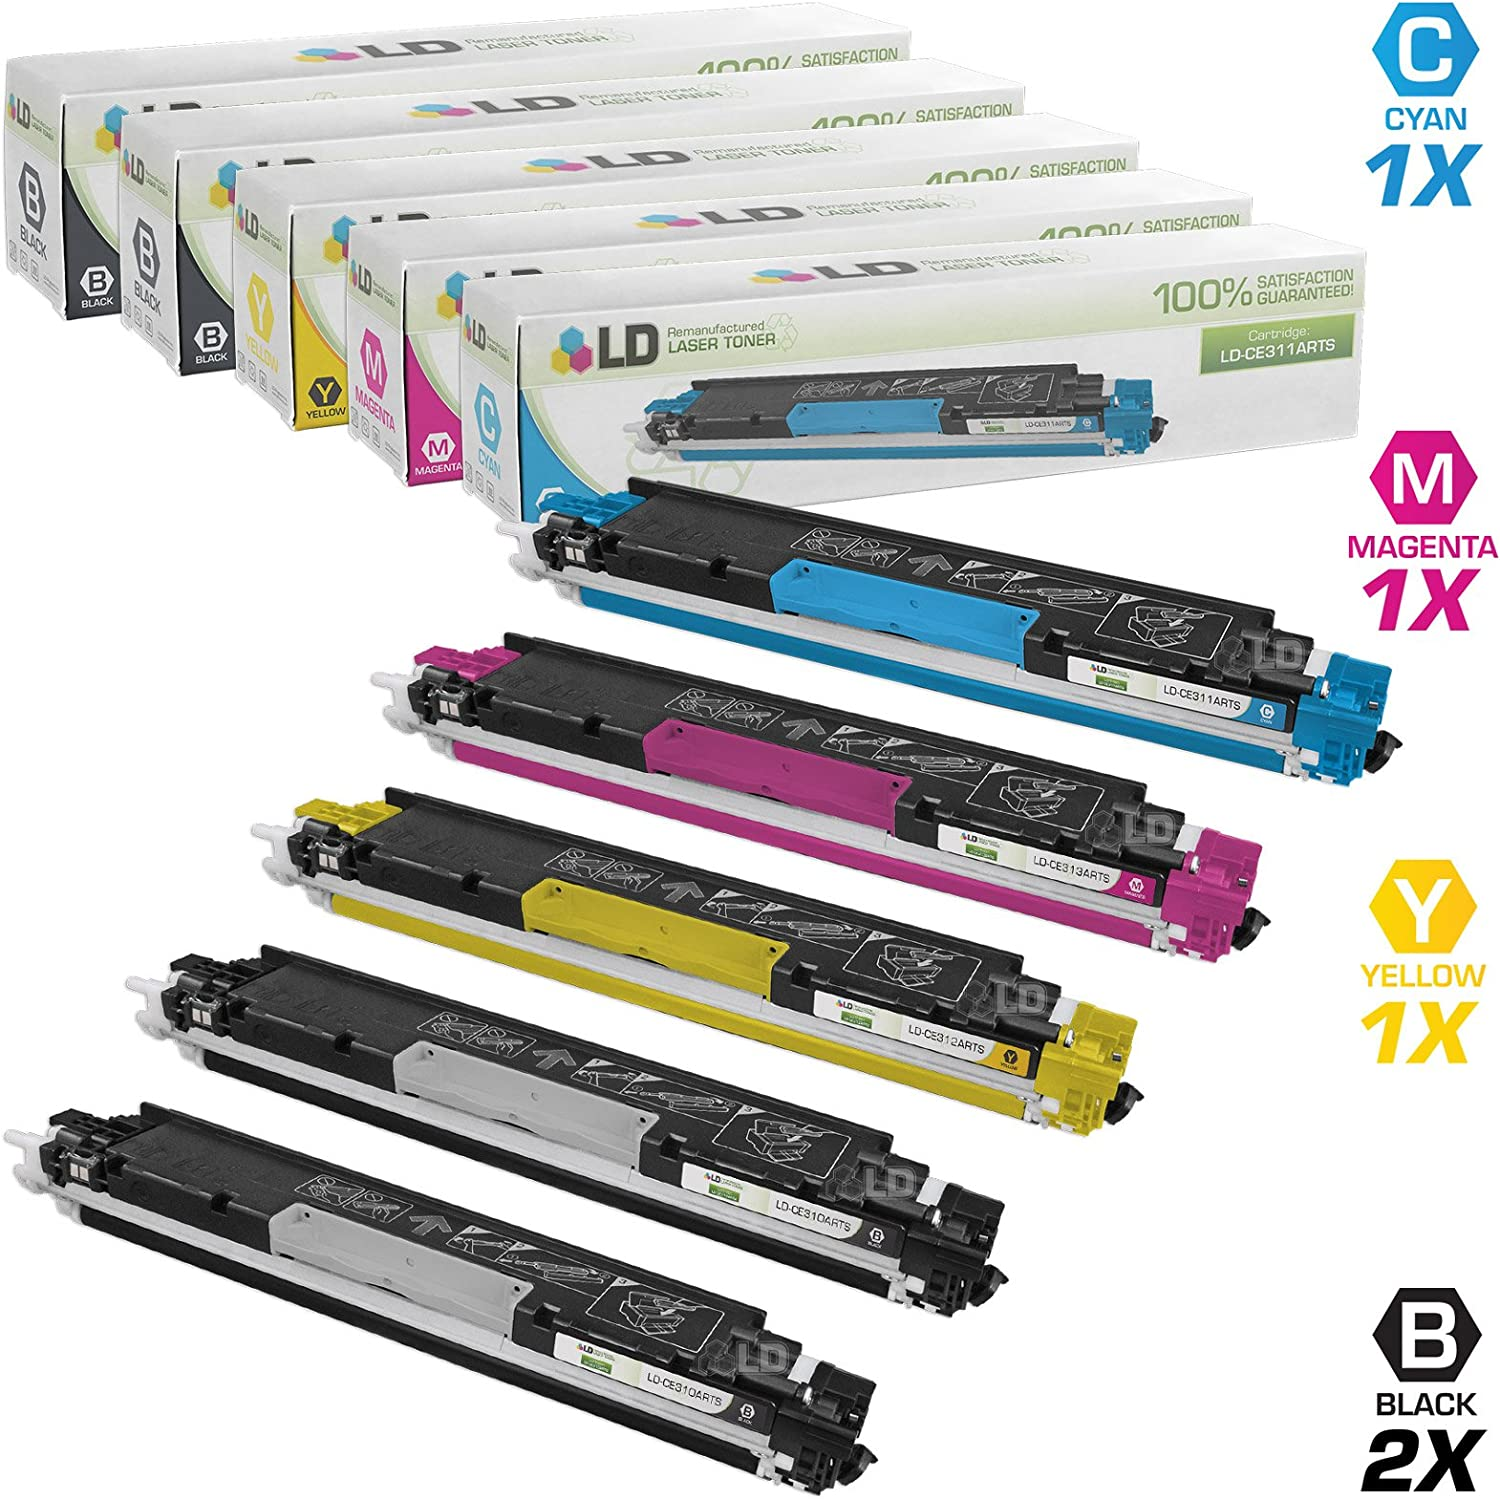 LD Remanufactured Toner Cartridge Replacement for HP 126A (2 Black, 1 Cyan, 1 Magenta, 1 Yellow, 5-Pack)